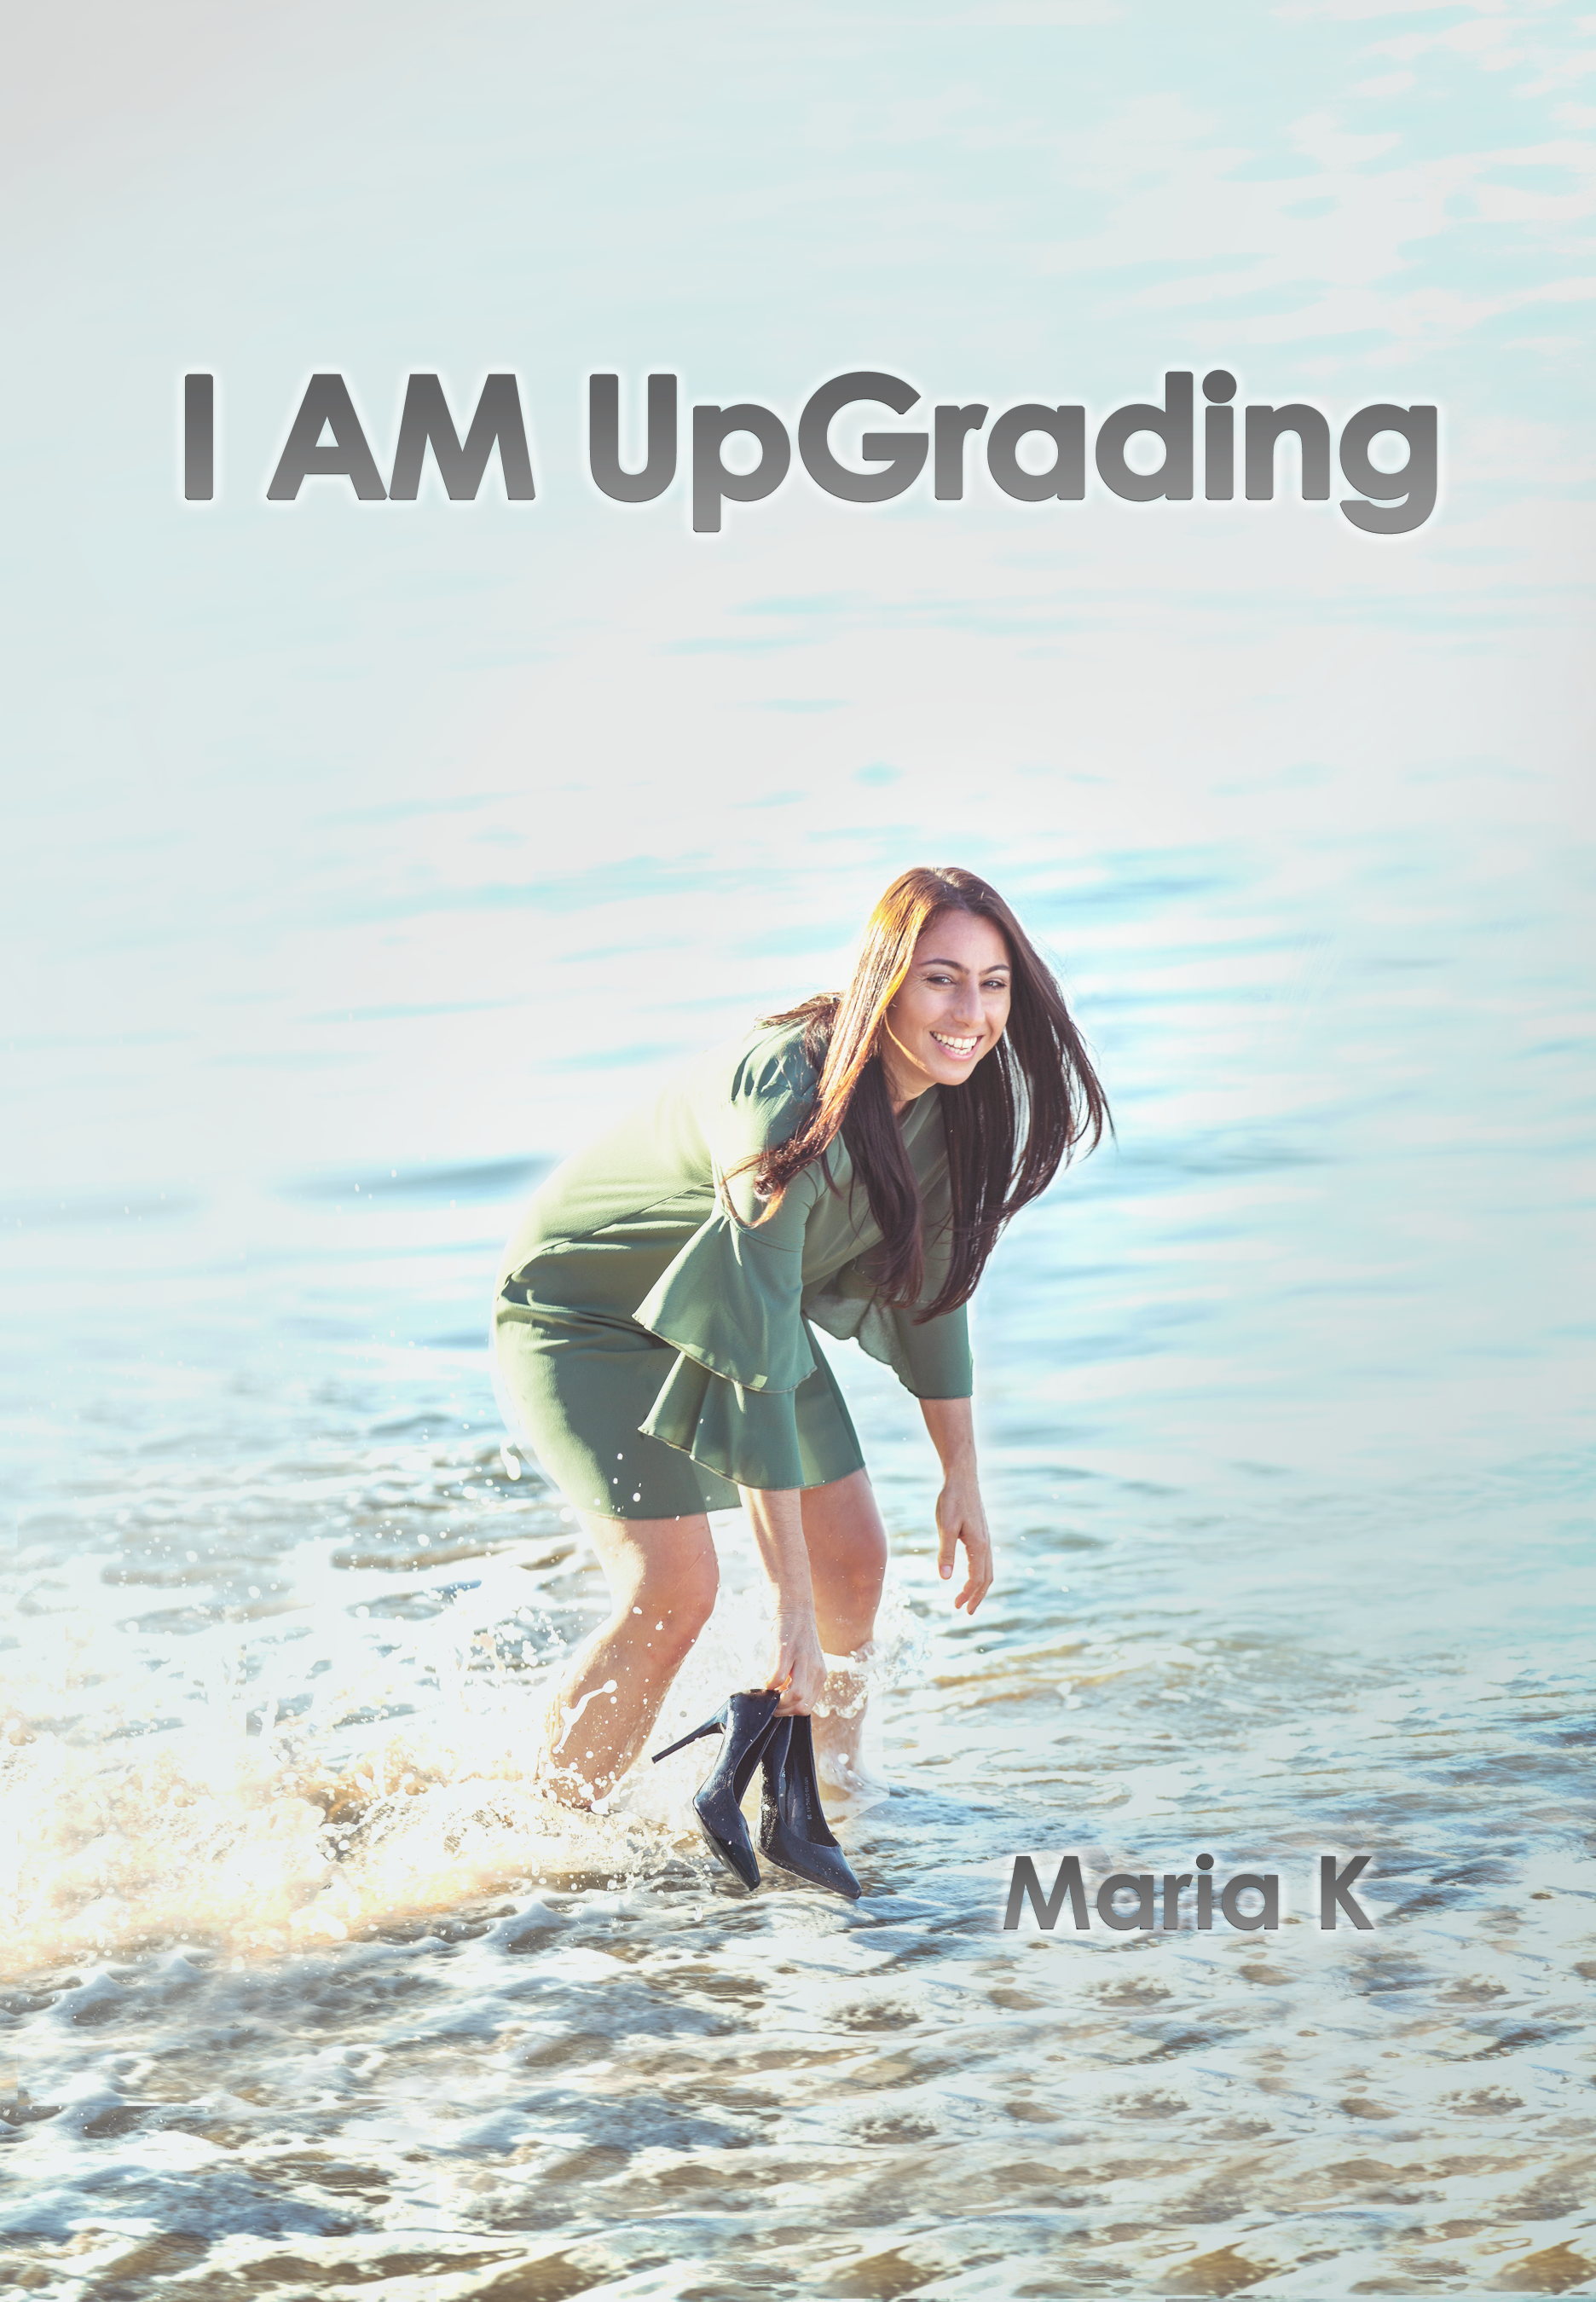 About Maria K. - British-born Cypriot Maria K is living her best life in Goa, India, and the UK, and helping people UpGrade their lives both in person and online through coaching, speaking, teaching, and consulting.Contact Maria:maria@upgradewithmariak.com.